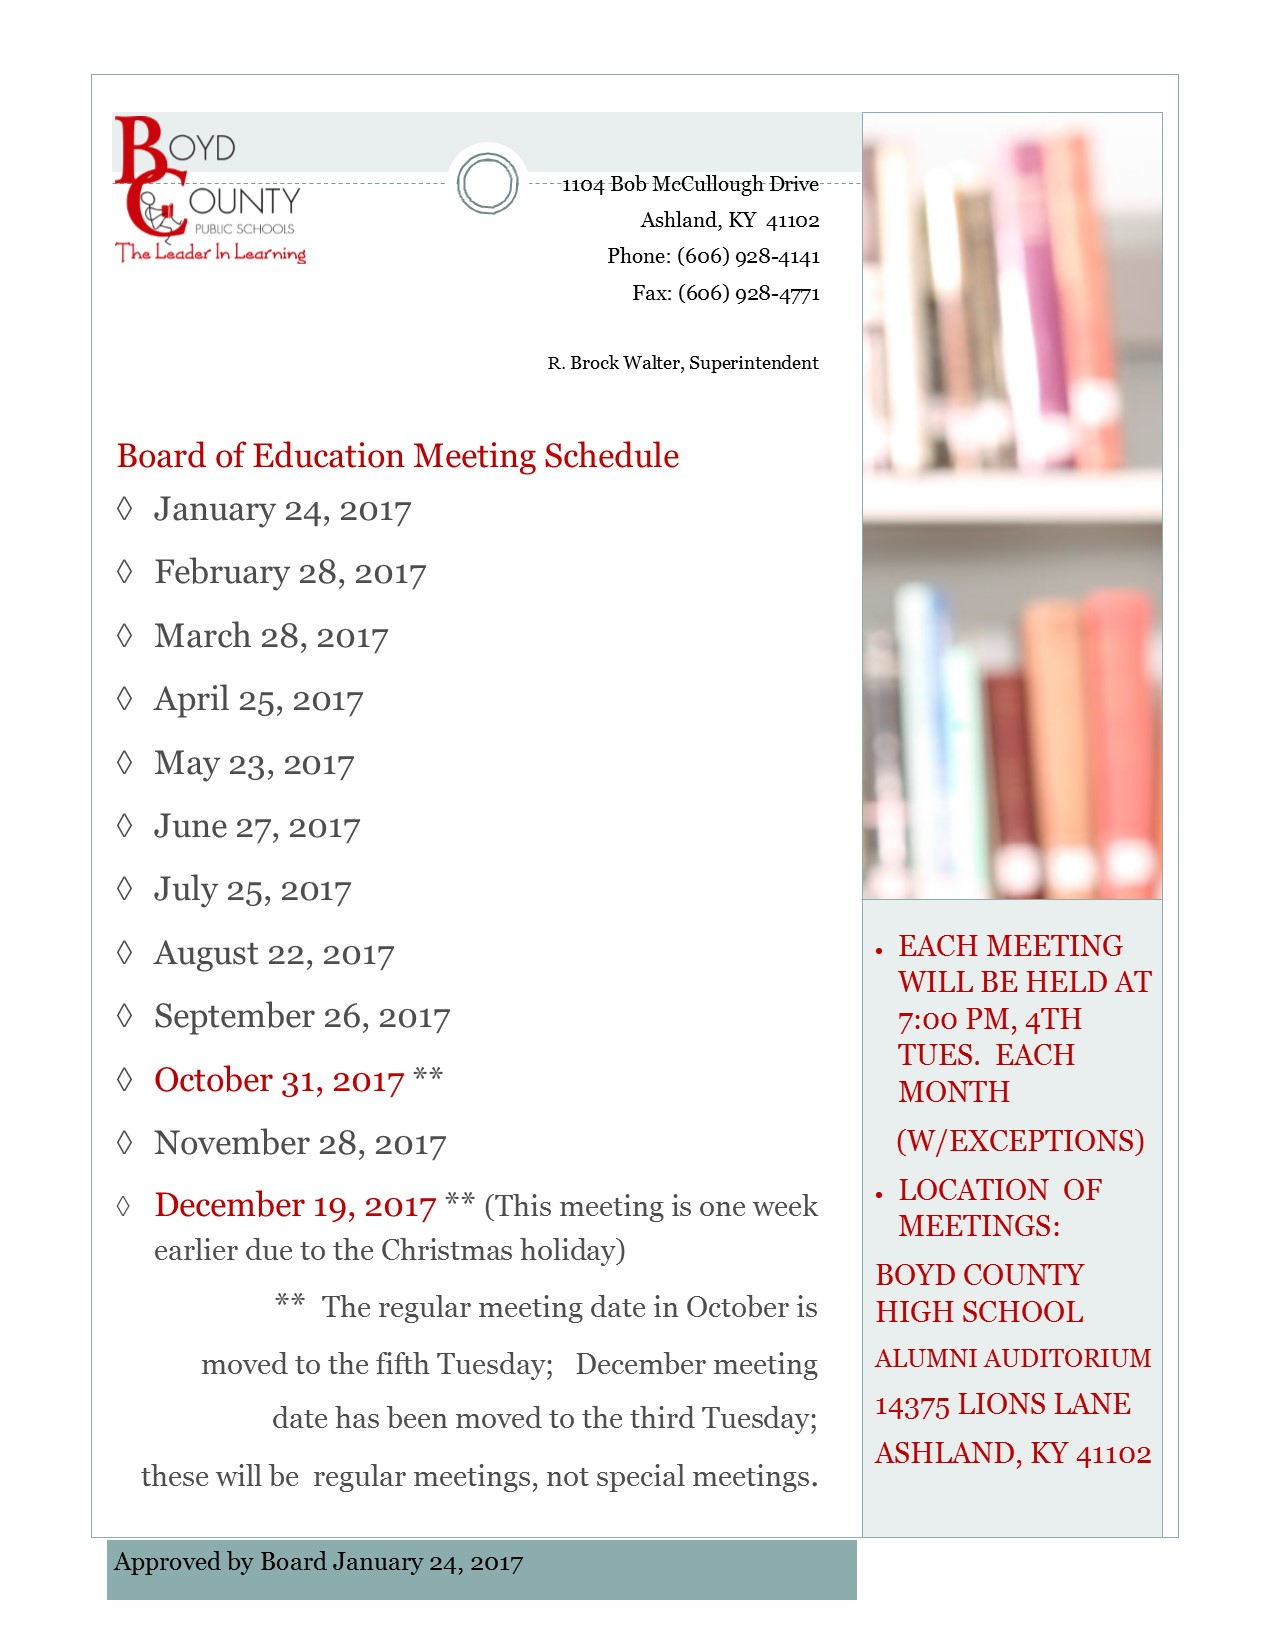 Board of Education schedule for the reamainder of 2017